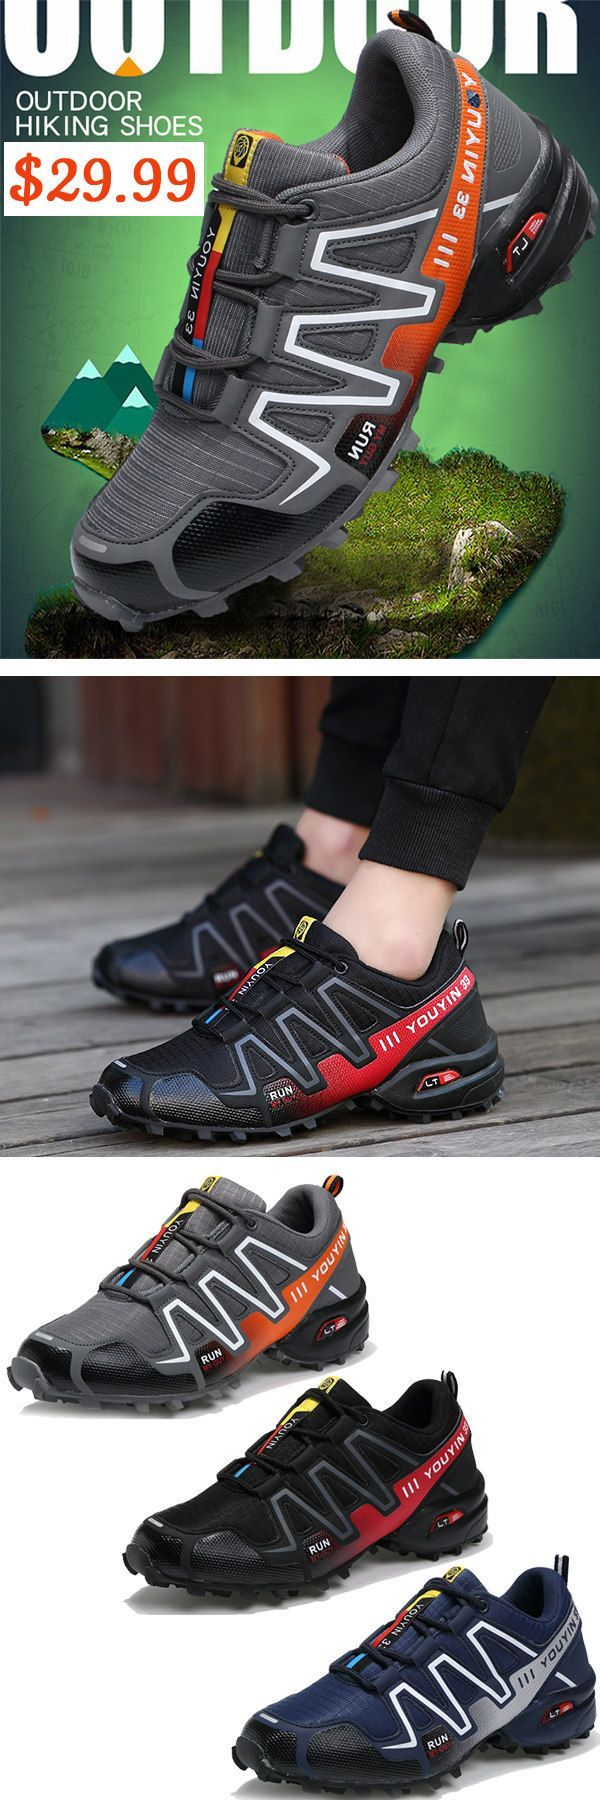 US$29.99 + Free Shipping. Outdoor Shoes Breathable Waterproof Anti-slip Wear-resistant Running Hiking Climbing Leisure. Outdoor hiking shoes with Low Price & High Quality. #shoes #climbingshoes